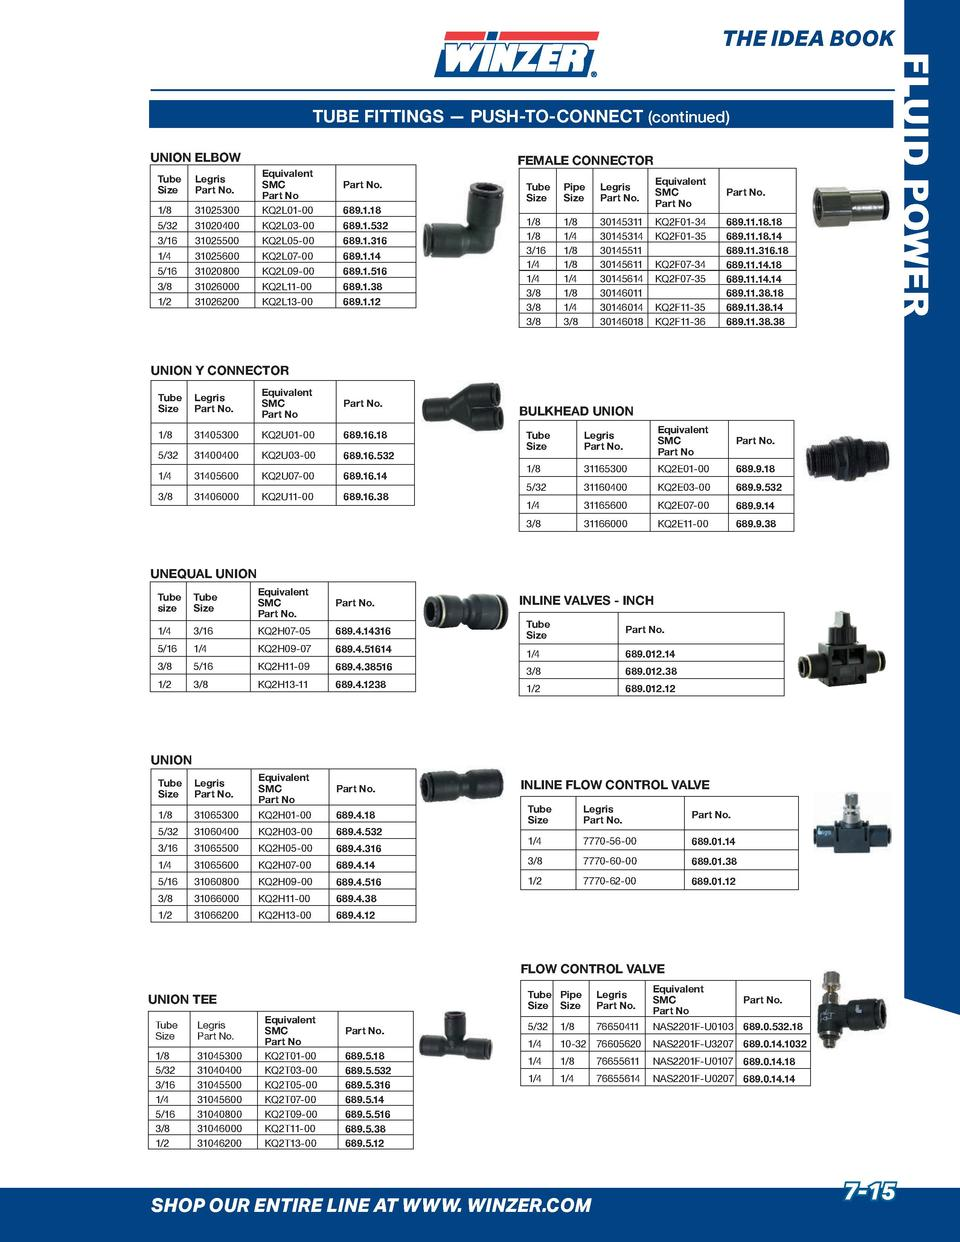 THE IDEA BOOK  FLUID POWER  TUBE FITTINGS     PUSH-TO-CONNECT  continued  UNION ELBOW Tube Size  Legris Part No.  1 8 5 32...